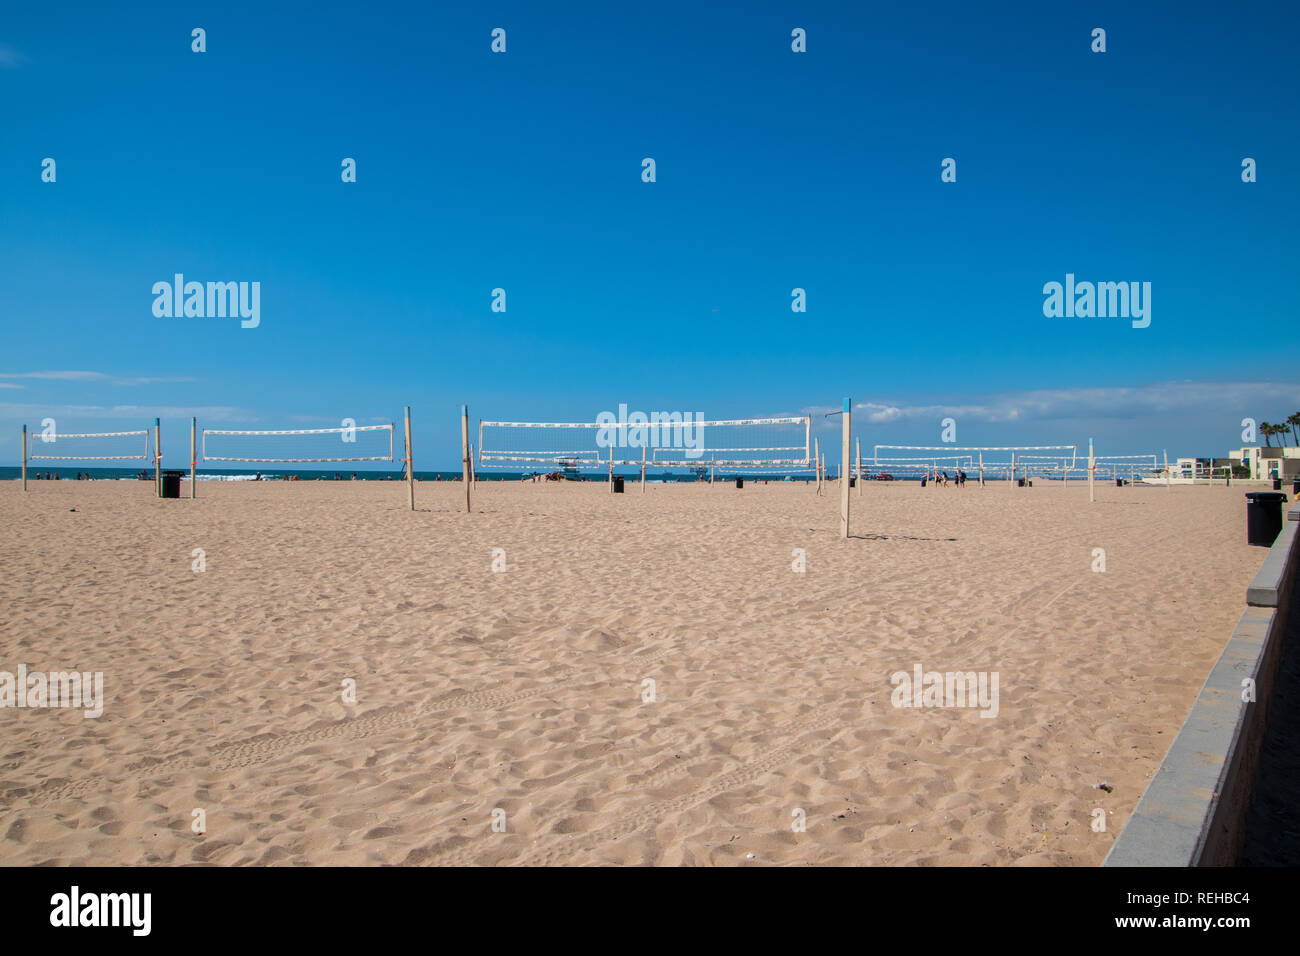 Outdoor Court Volleyball High Resolution Stock Photography And Images Alamy